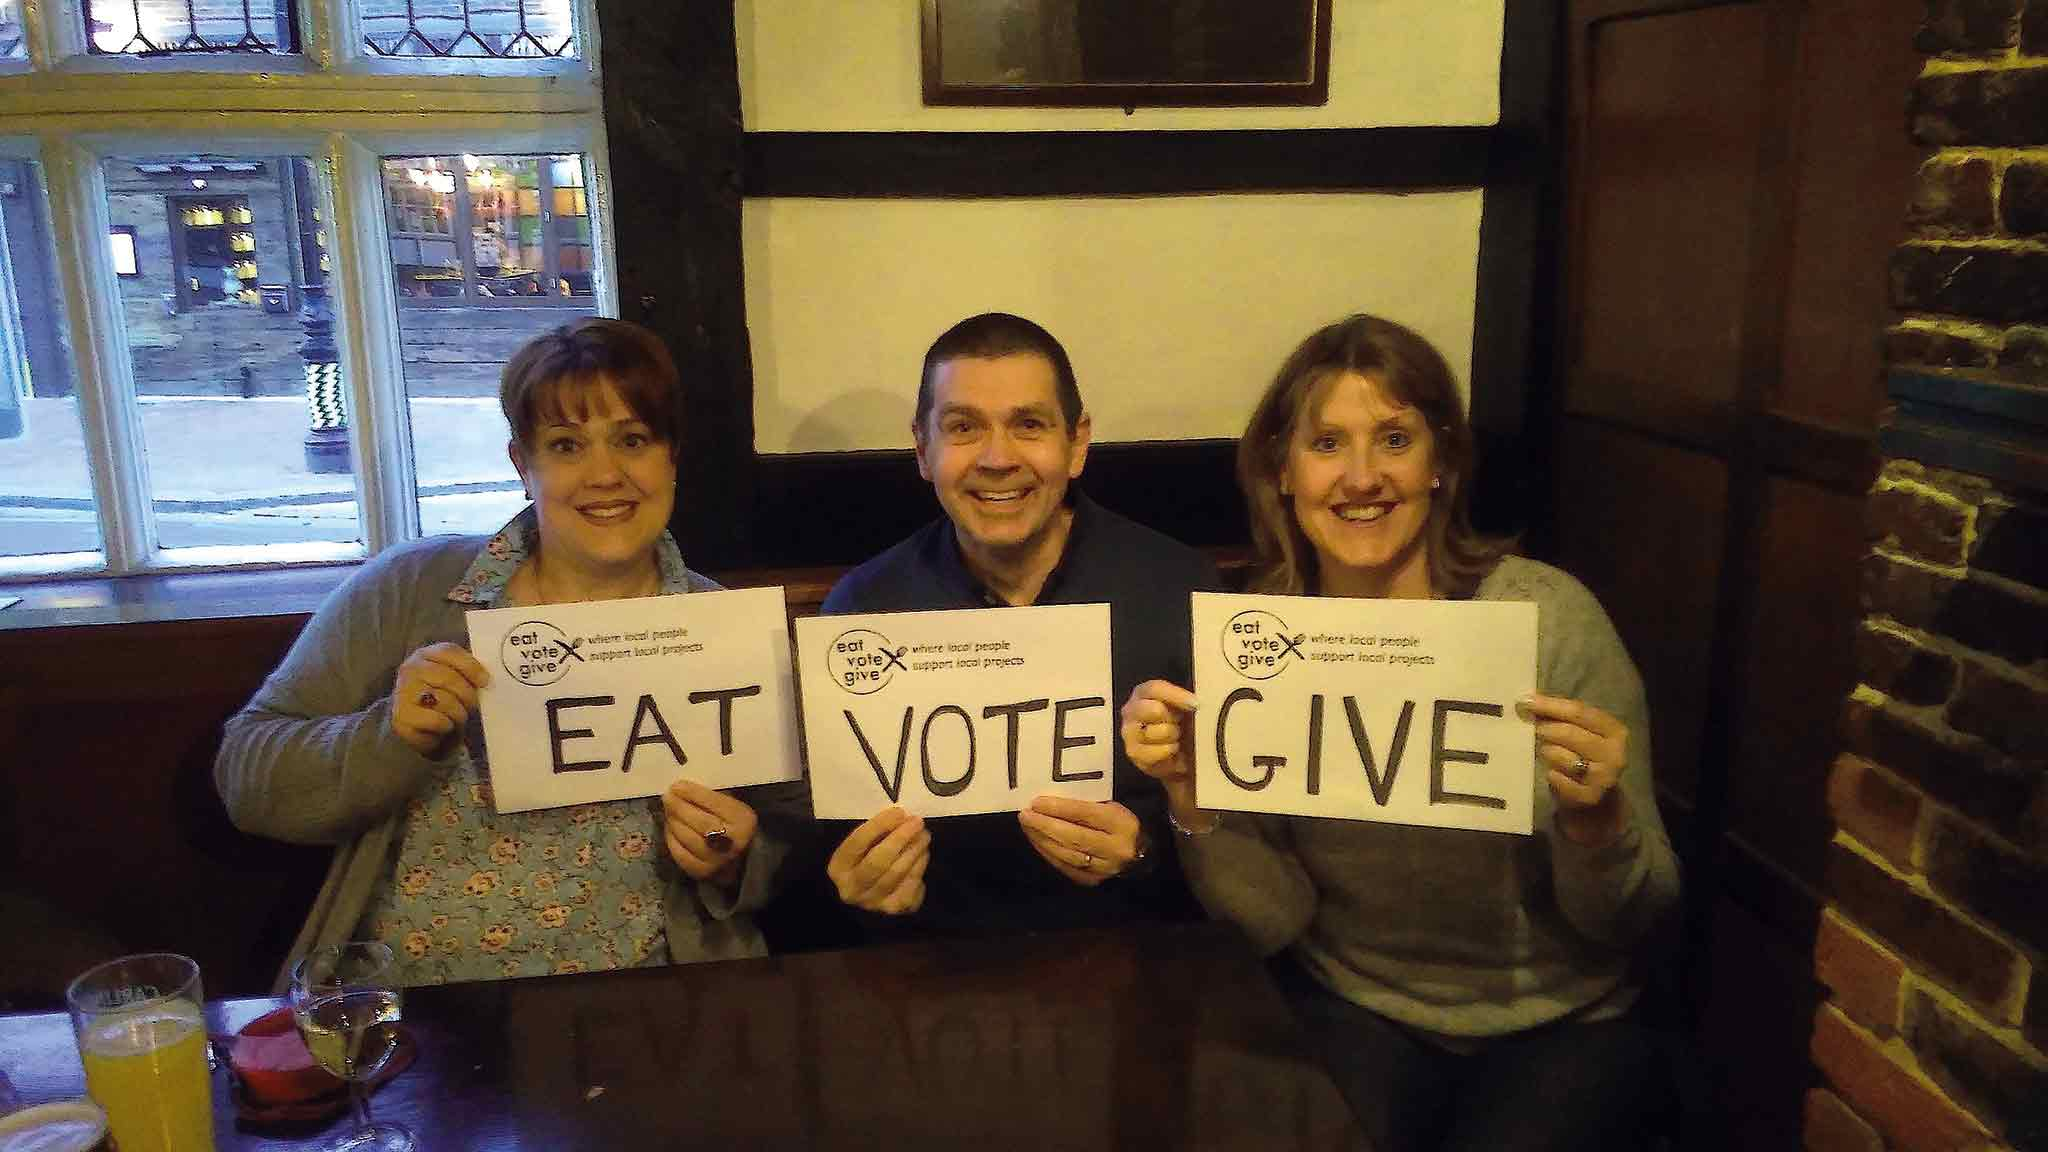 Eat Vote Give